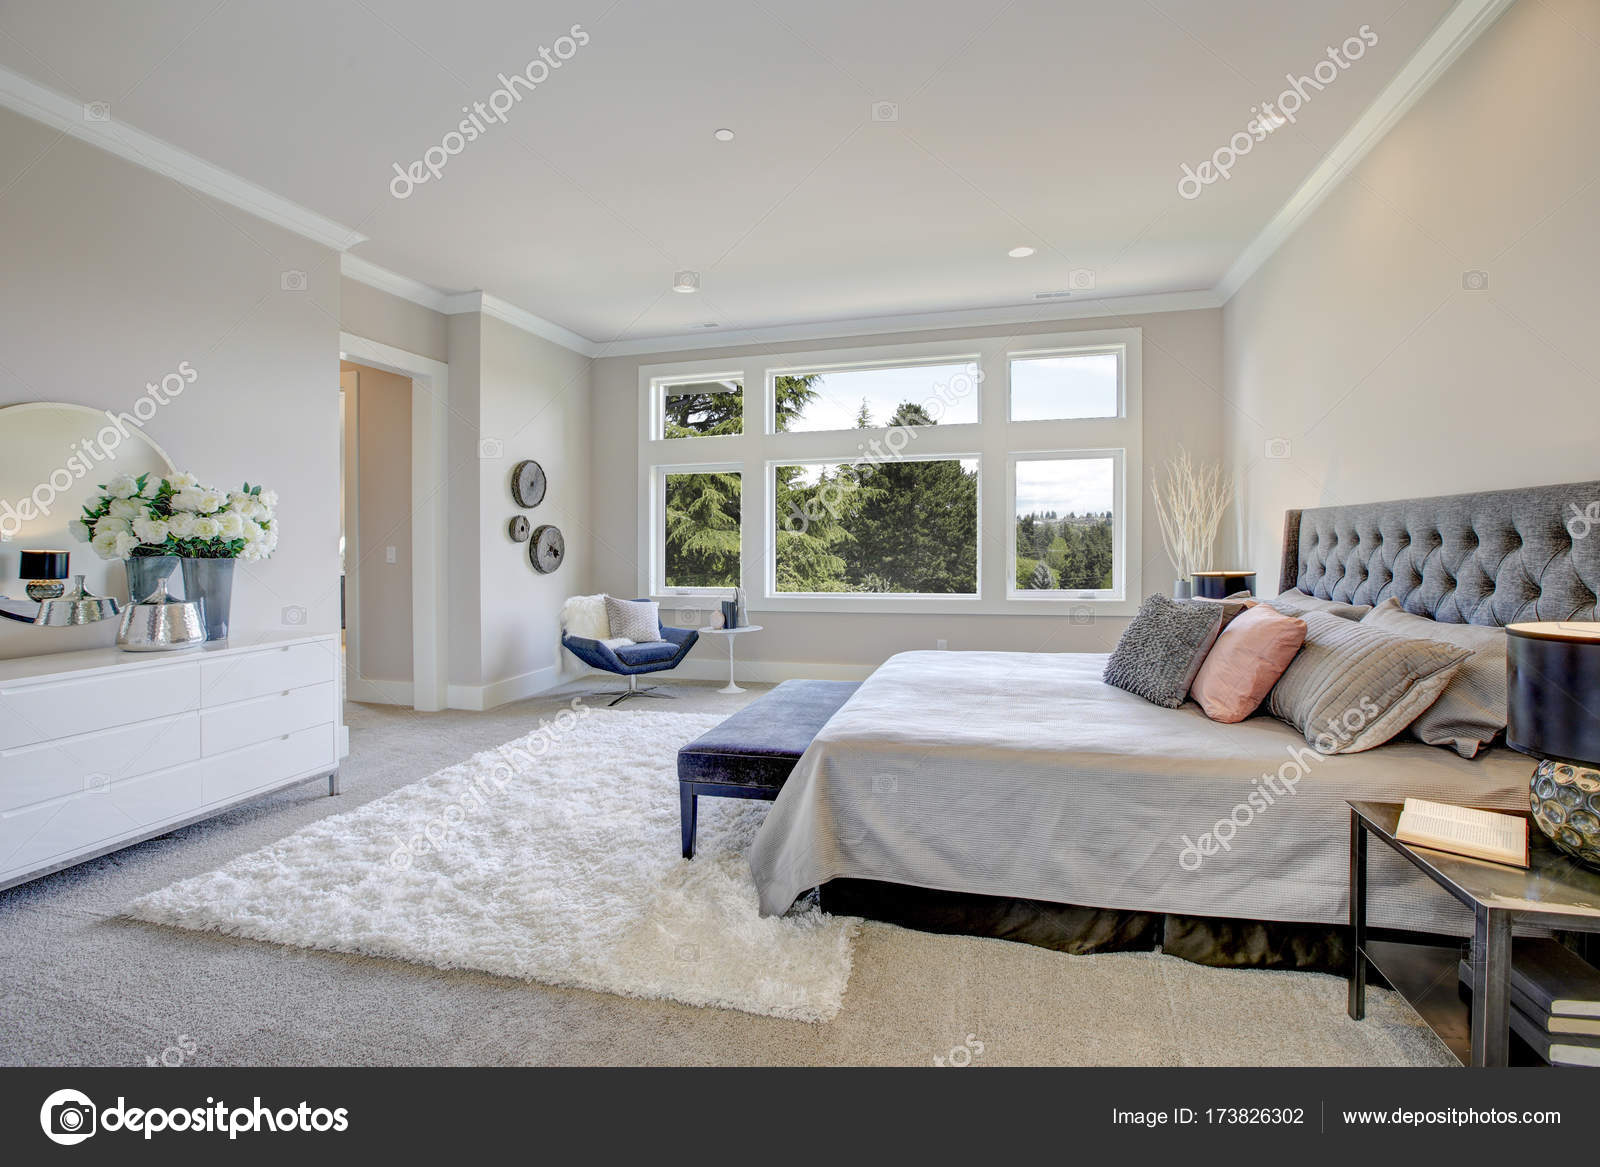 Master Bedroom Interior With King Size Bed Stock Photo Image By C Iriana88w 173826302